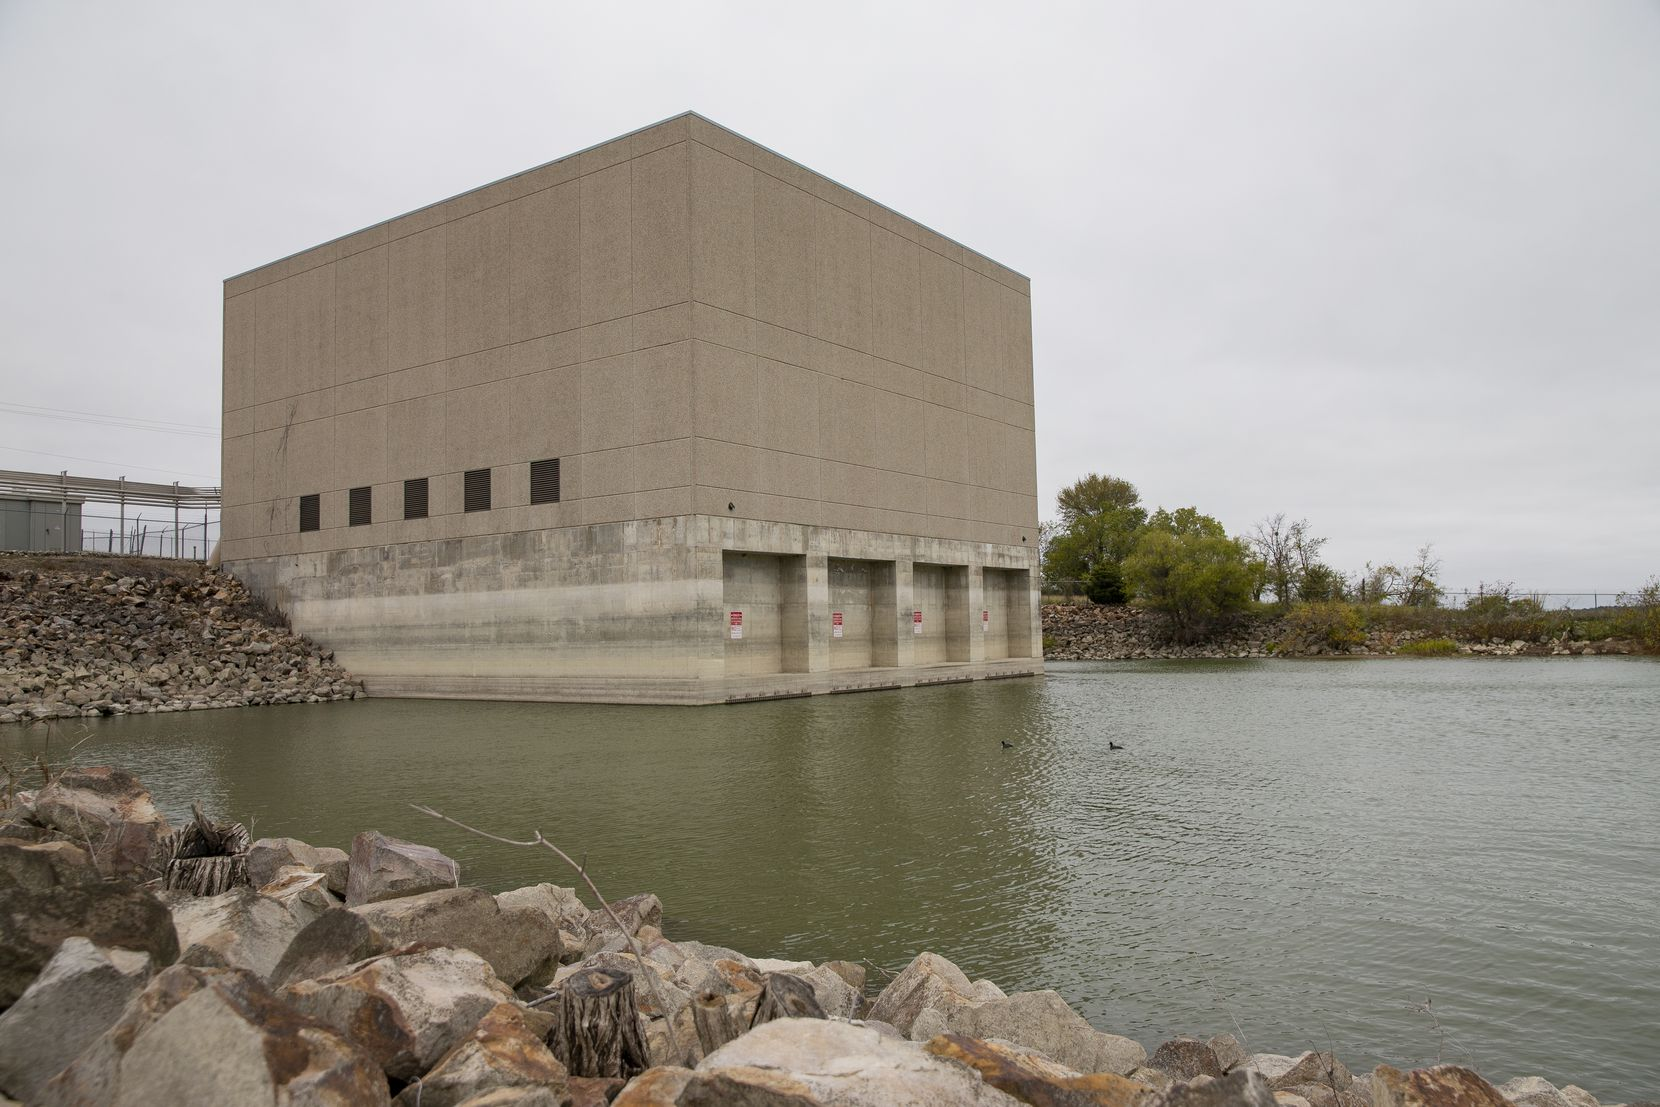 The North Texas Municipal Water District water pump at Lavon Lake in Wylie, photographed Thursday, Oct. 29. Eighty communities, home to about 1.8 million customers, get their water, directly or indirectly, from the district.